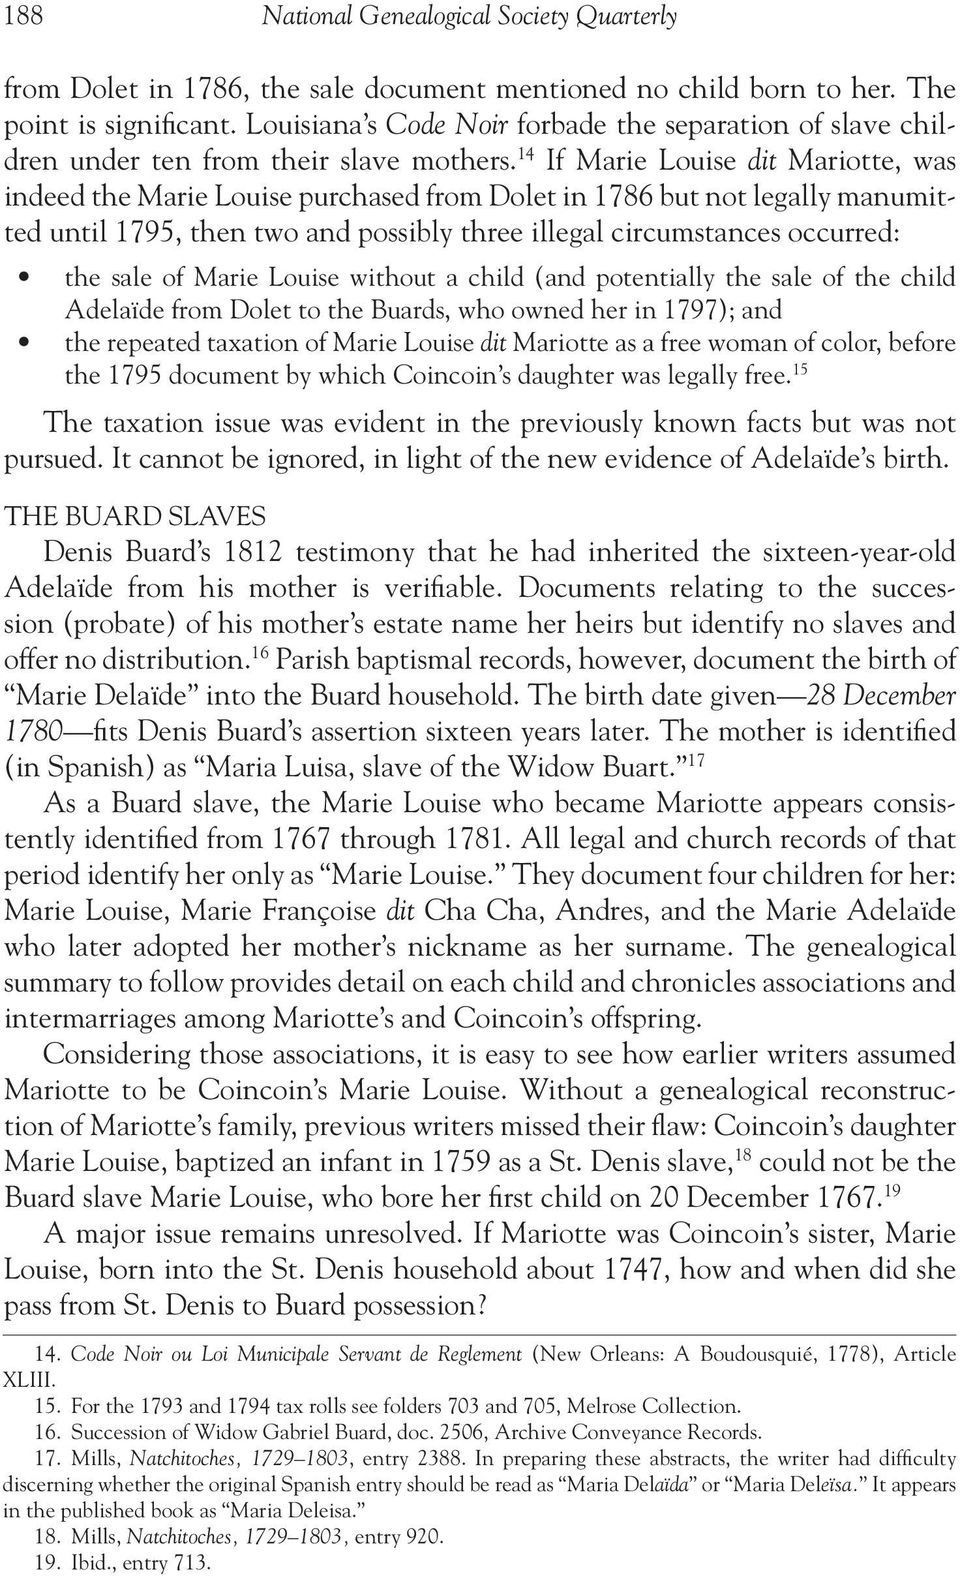 14 If Marie Louise dit Mariotte, was indeed the Marie Louise purchased from Dolet in 1786 but not legally manumitted until 1795, then two and possibly three illegal circumstances occurred: the sale